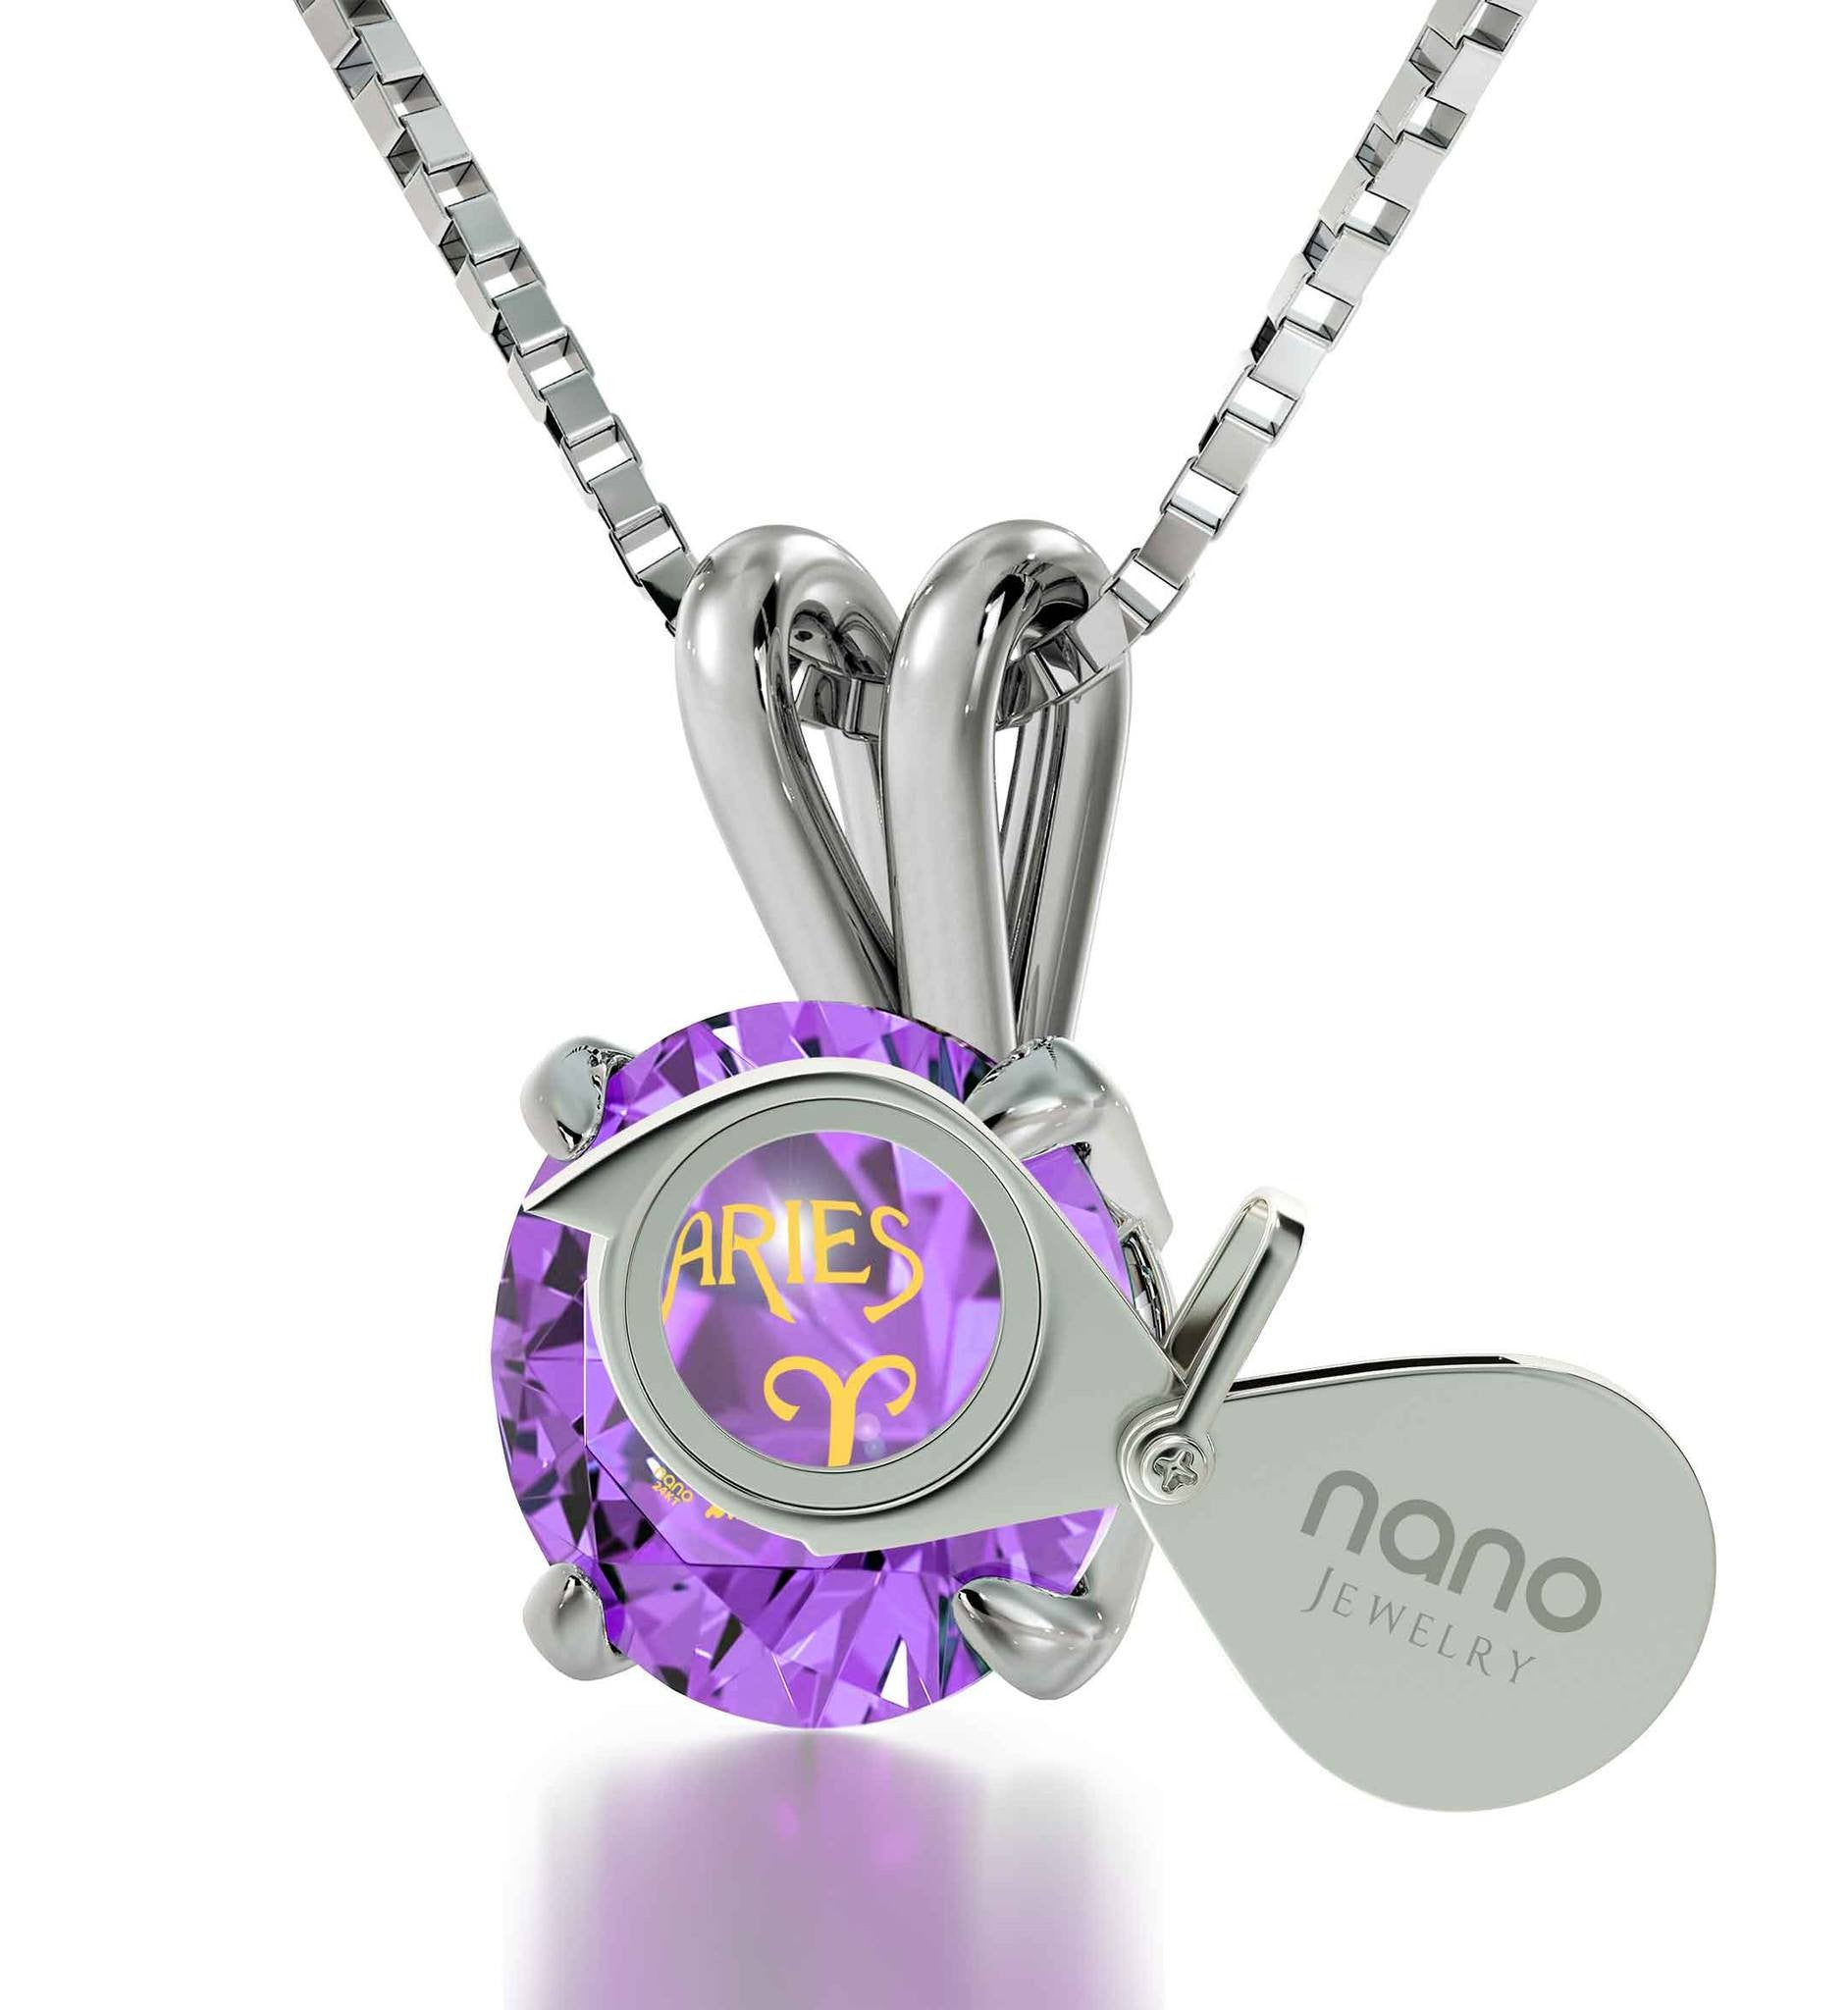 """ChristmasPresents for MyWife: AriesPendant, PurpleStoneJewelry, PerfectValentinesGift for Girlfriend"""